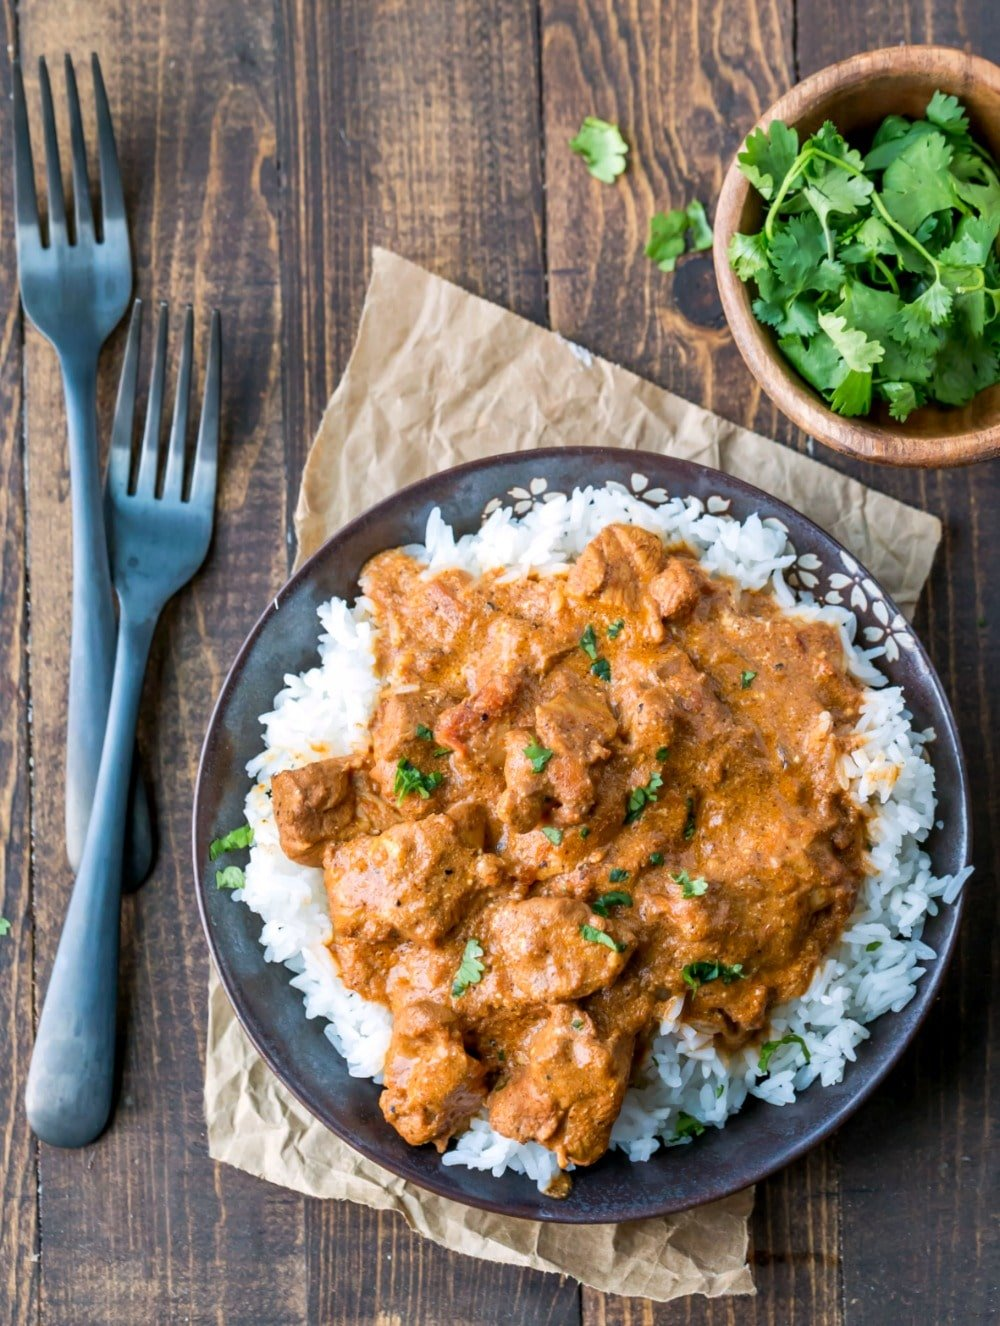 Dish of Indian Butter Chicken next to two dark metal forks